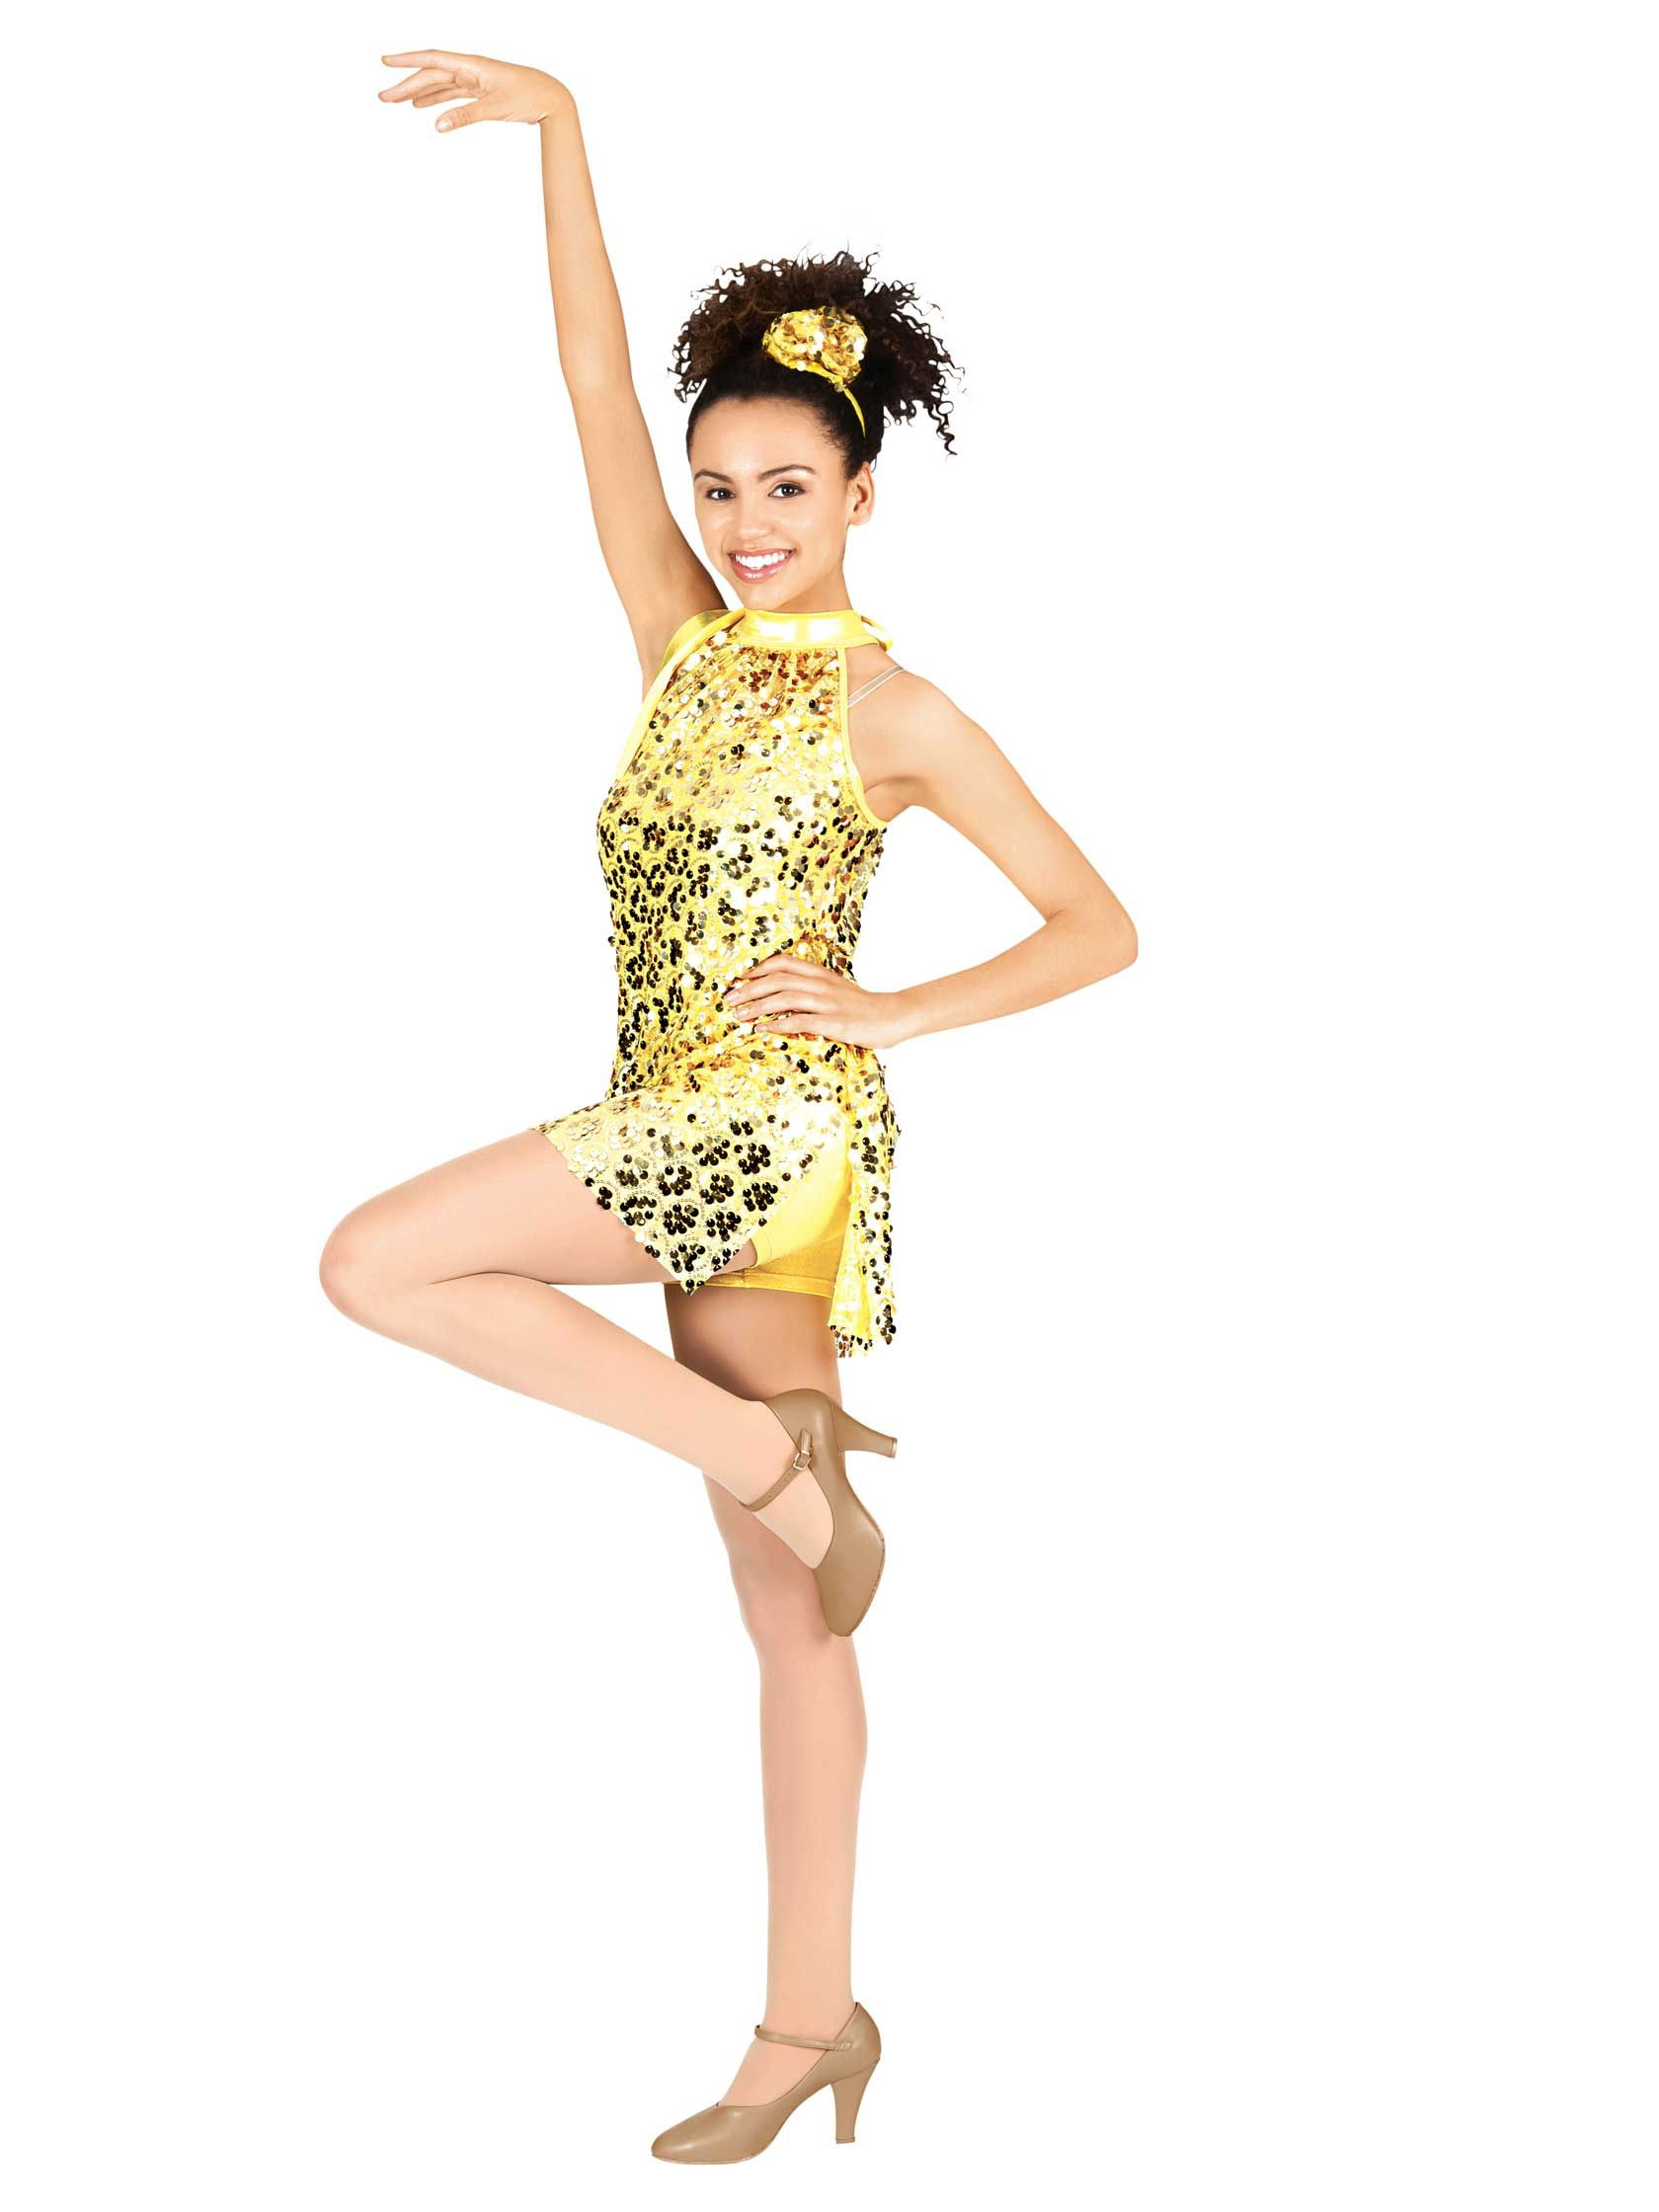 Heart Of Gold Th5009 Th5009c By Theatricals A New Costume Line By Discount Dance Supply Discountdanc Dance Costumes Discount Dance Supply Discount Dance